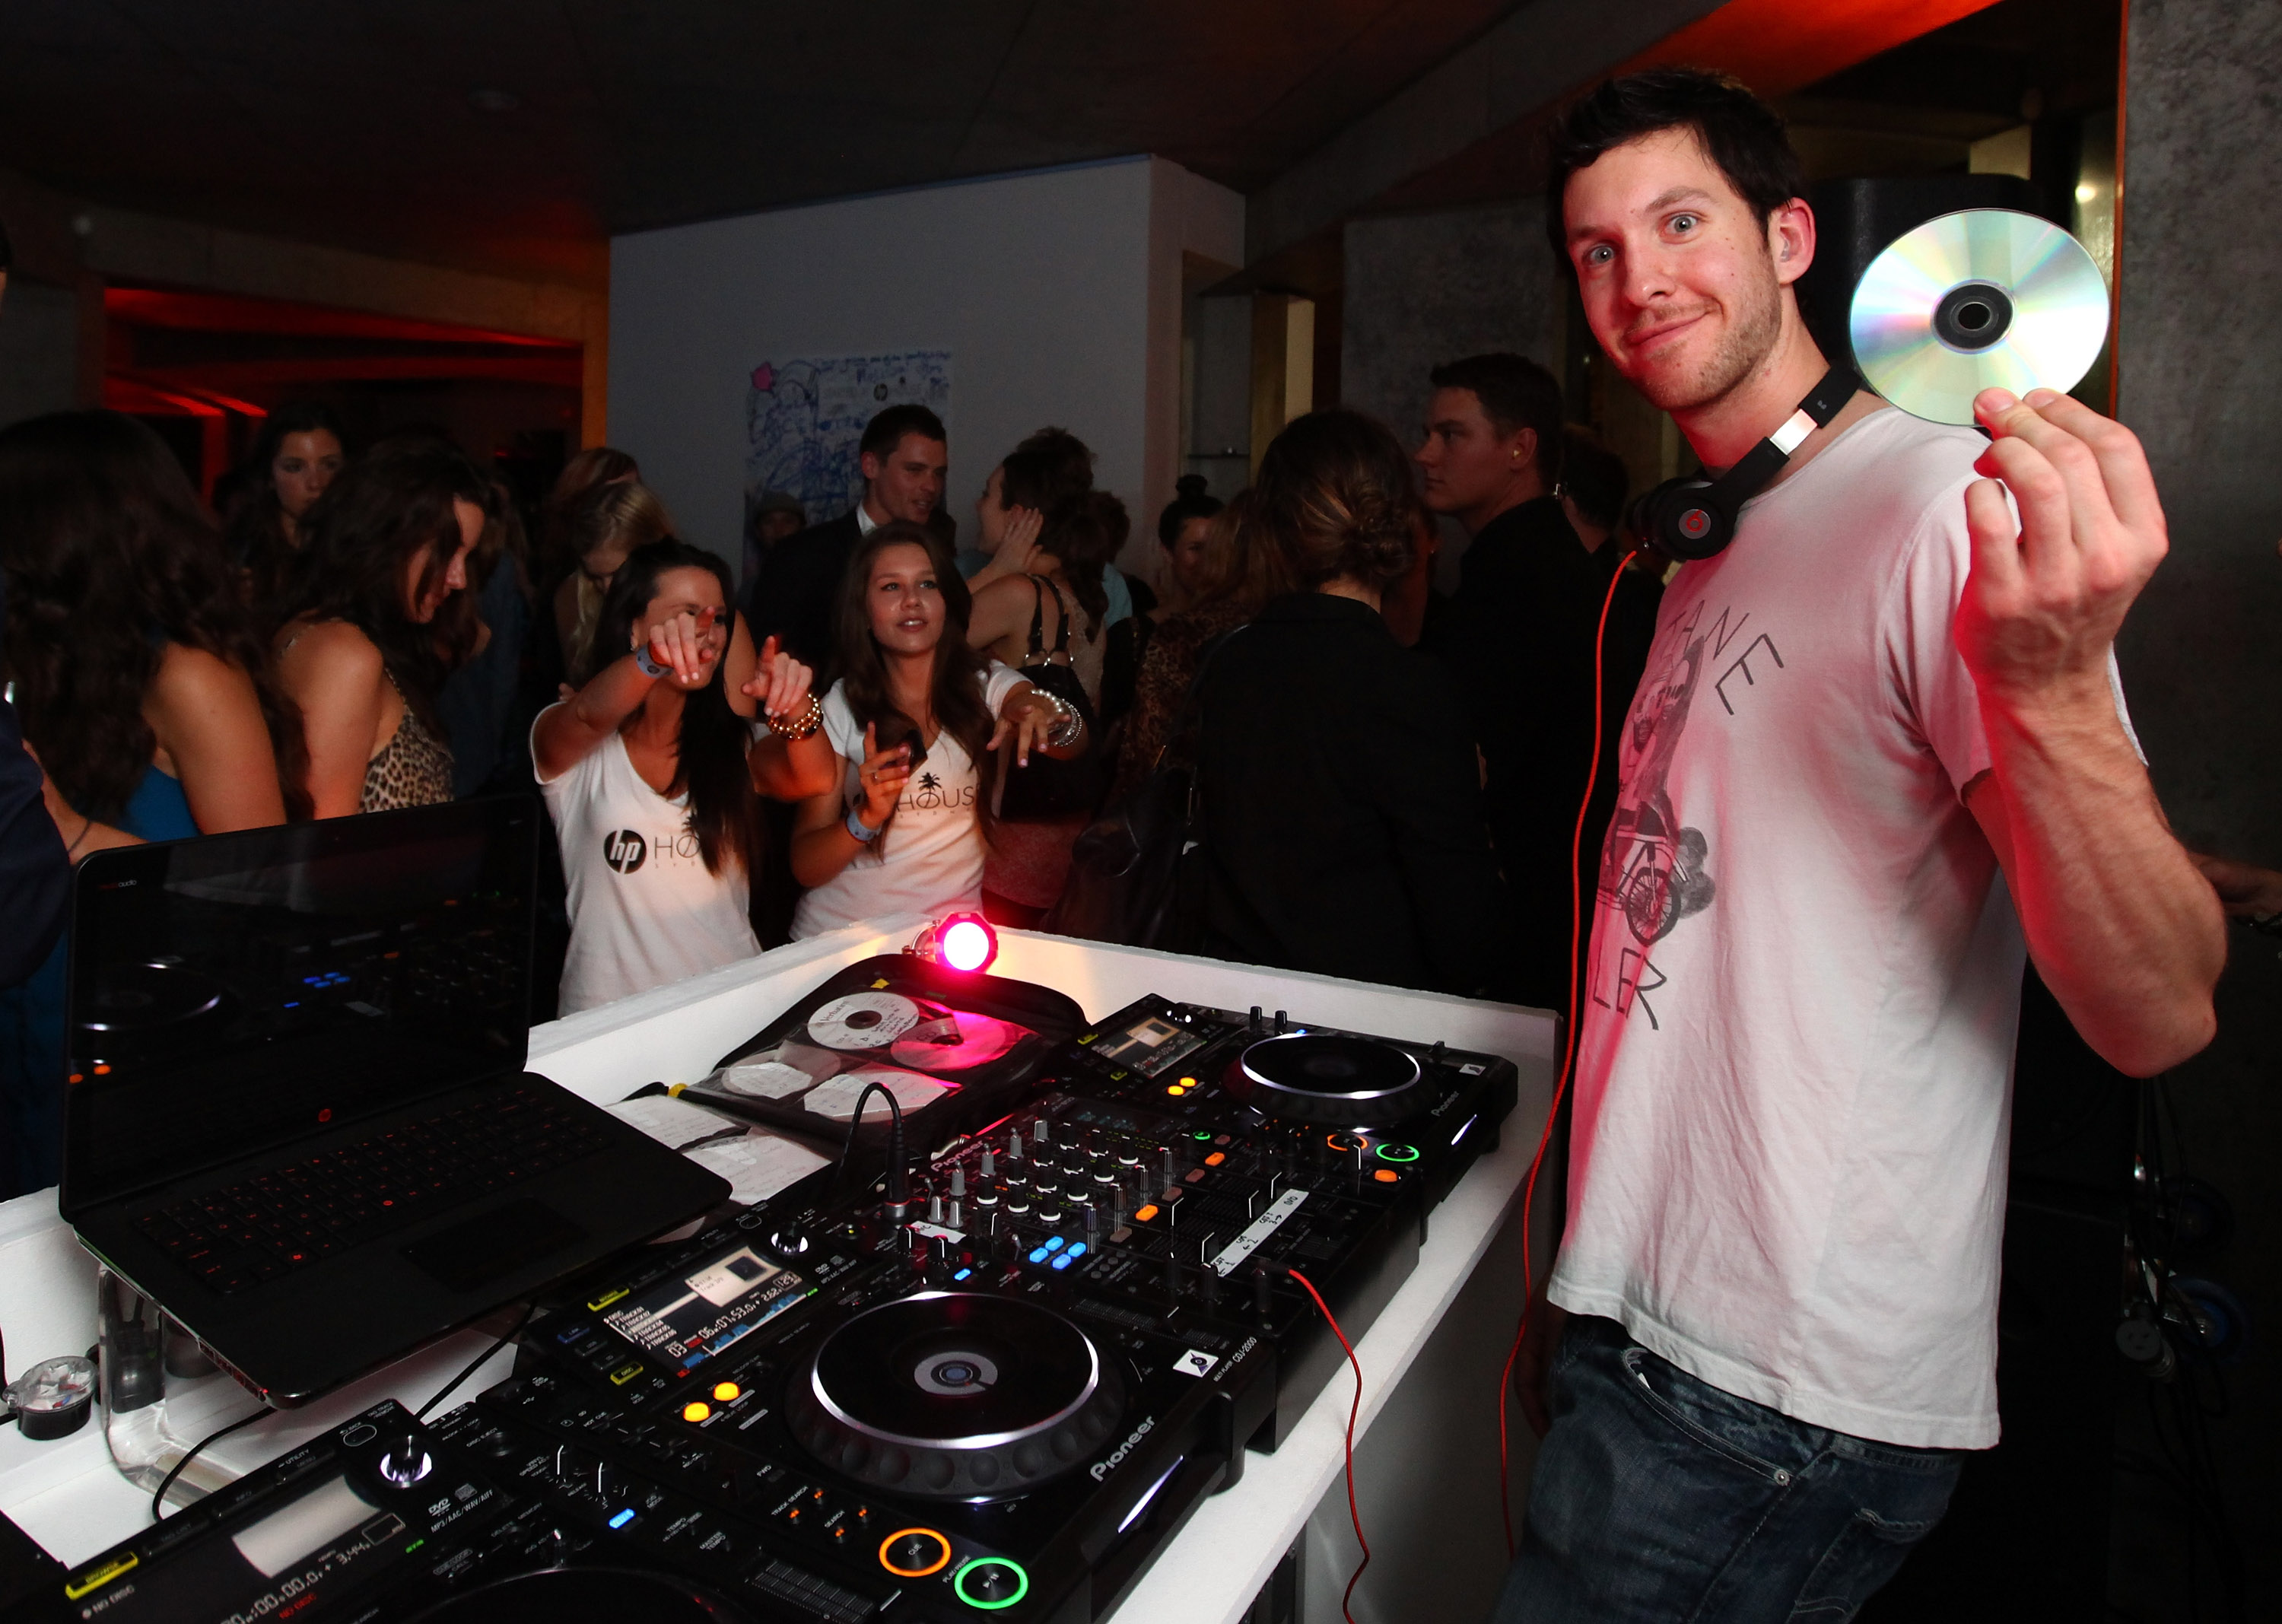 SYDNEY, AUSTRALIA - DECEMBER 01:  DJ Calvin Harris performs at the HP House Summer Beats launch party in Coogee on December 1, 2010 in Sydney, Australia.  (Photo by Don Arnold/WireImage)